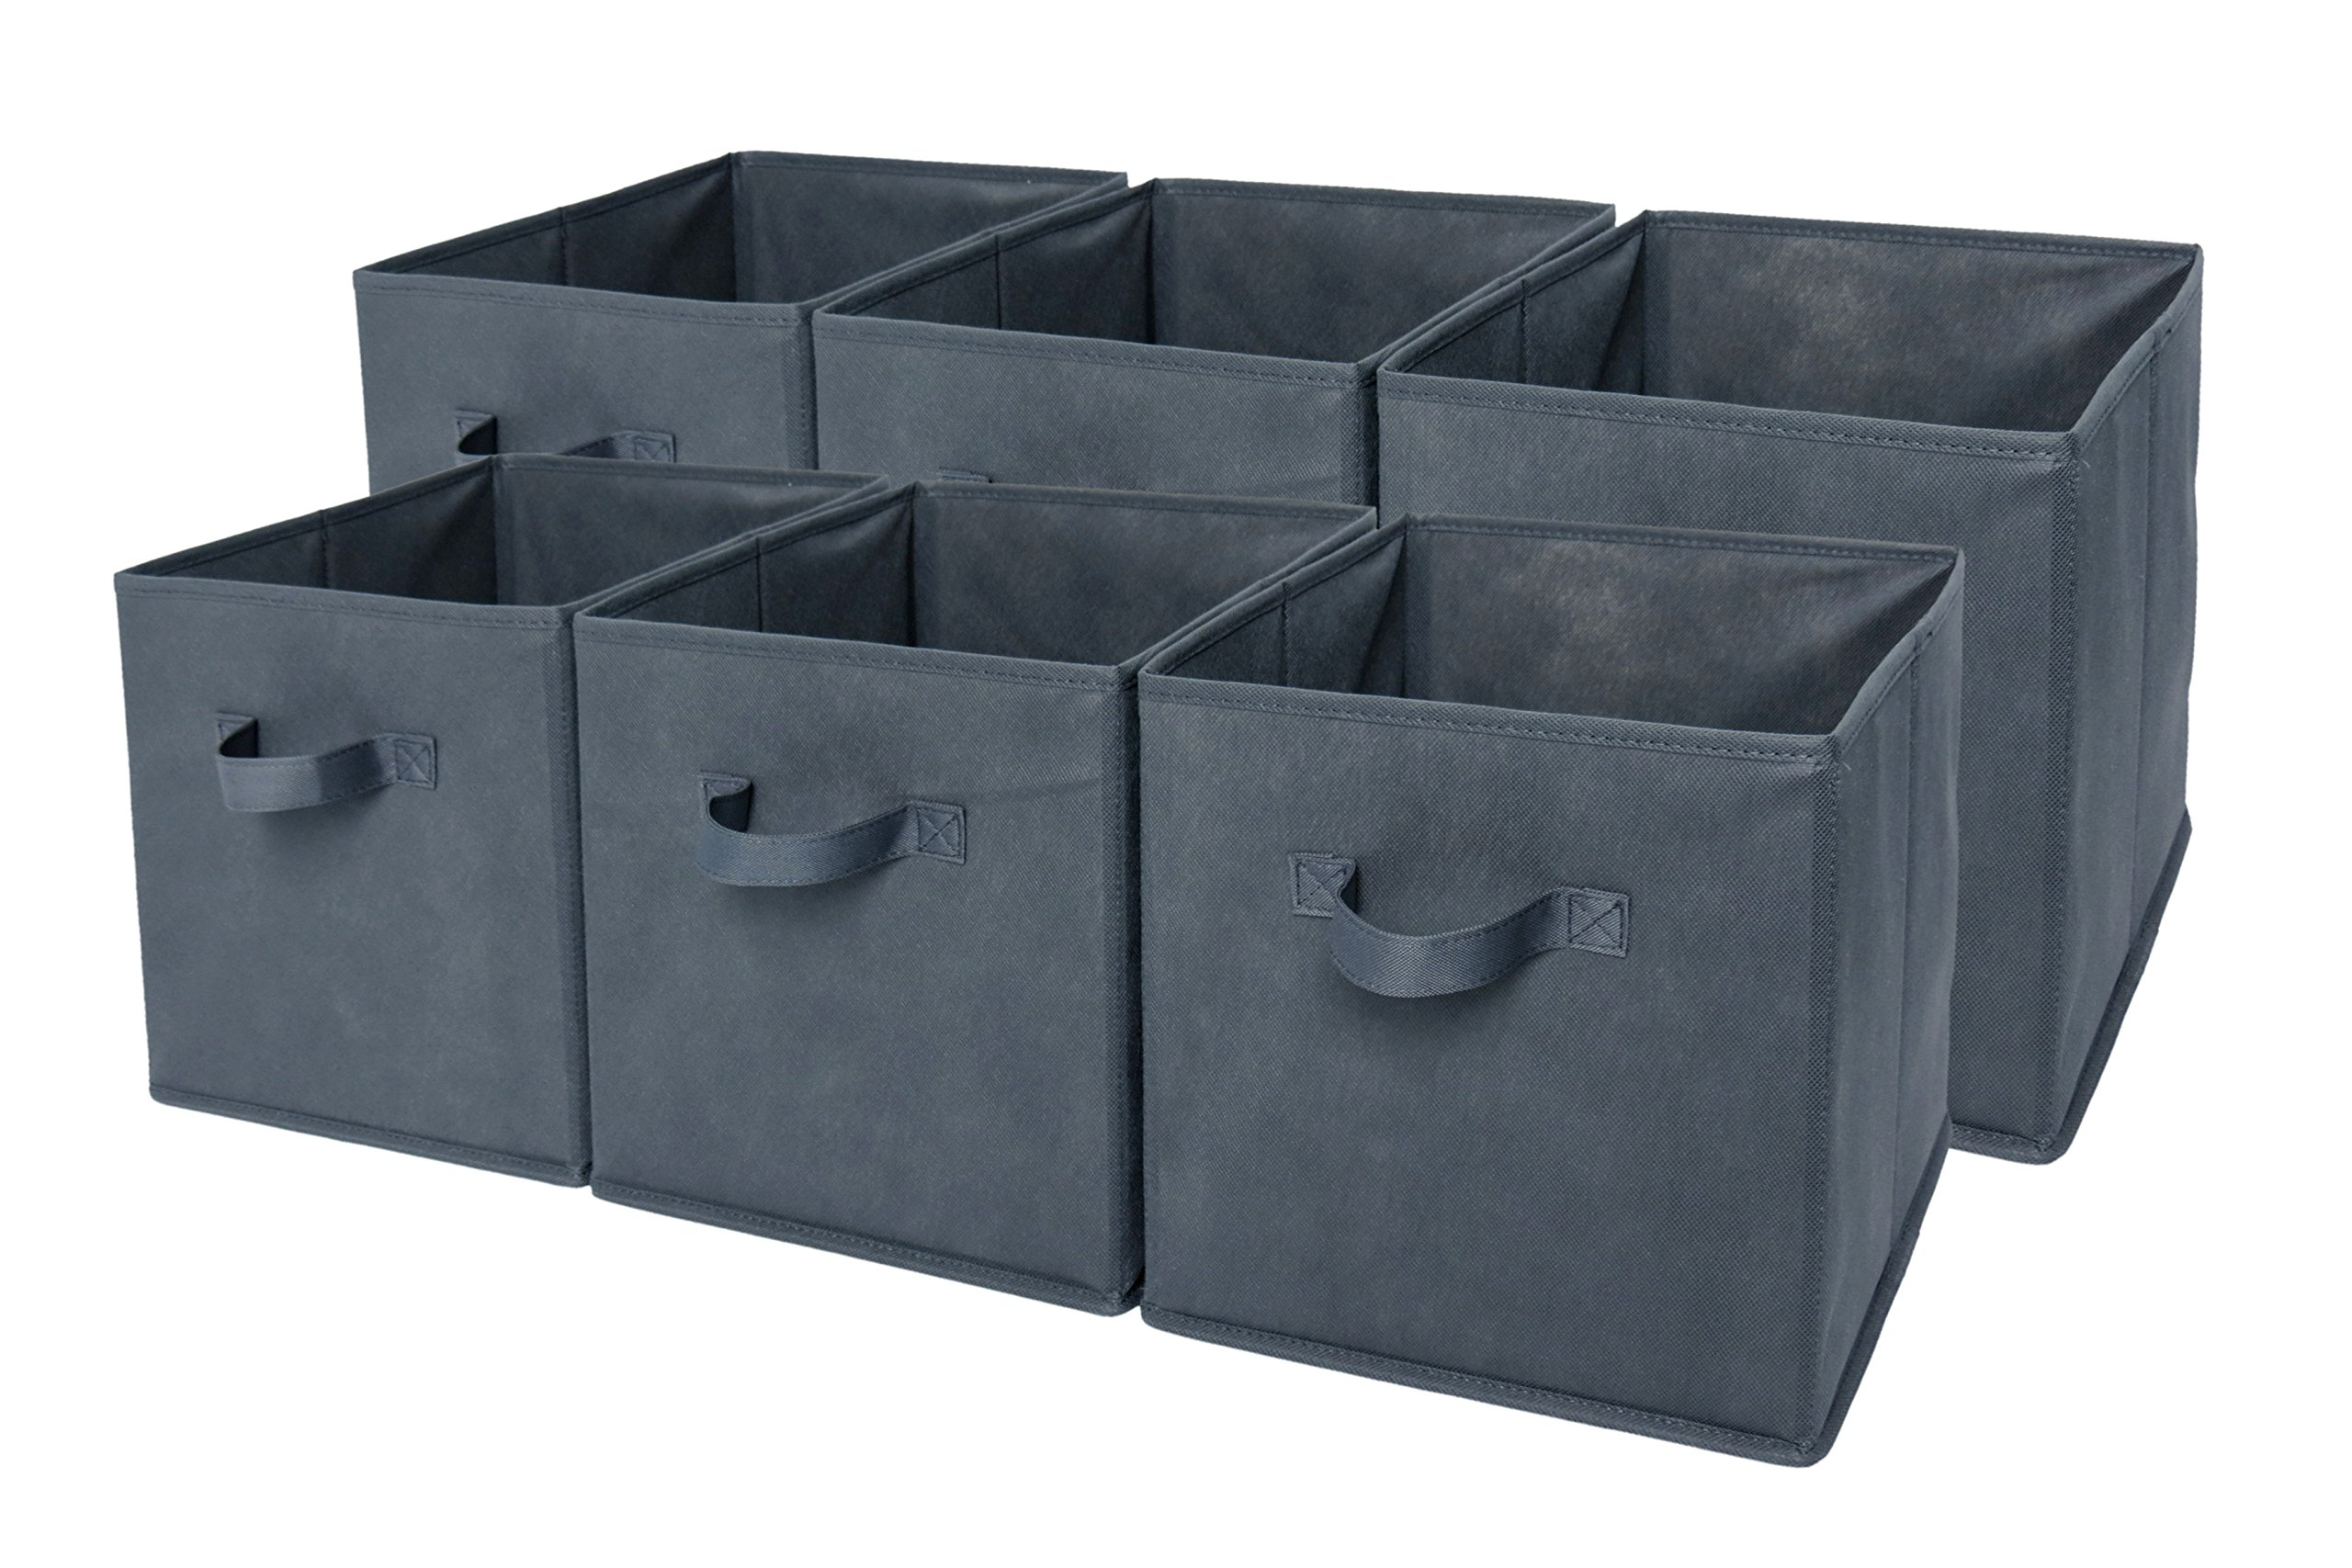 Sodynee Foldable Cloth Storage Cube Basket Bins Organizer Containers Drawers 6 Pack Grey  sc 1 st  Amazon.com & Cube Storage Bins: Amazon.com